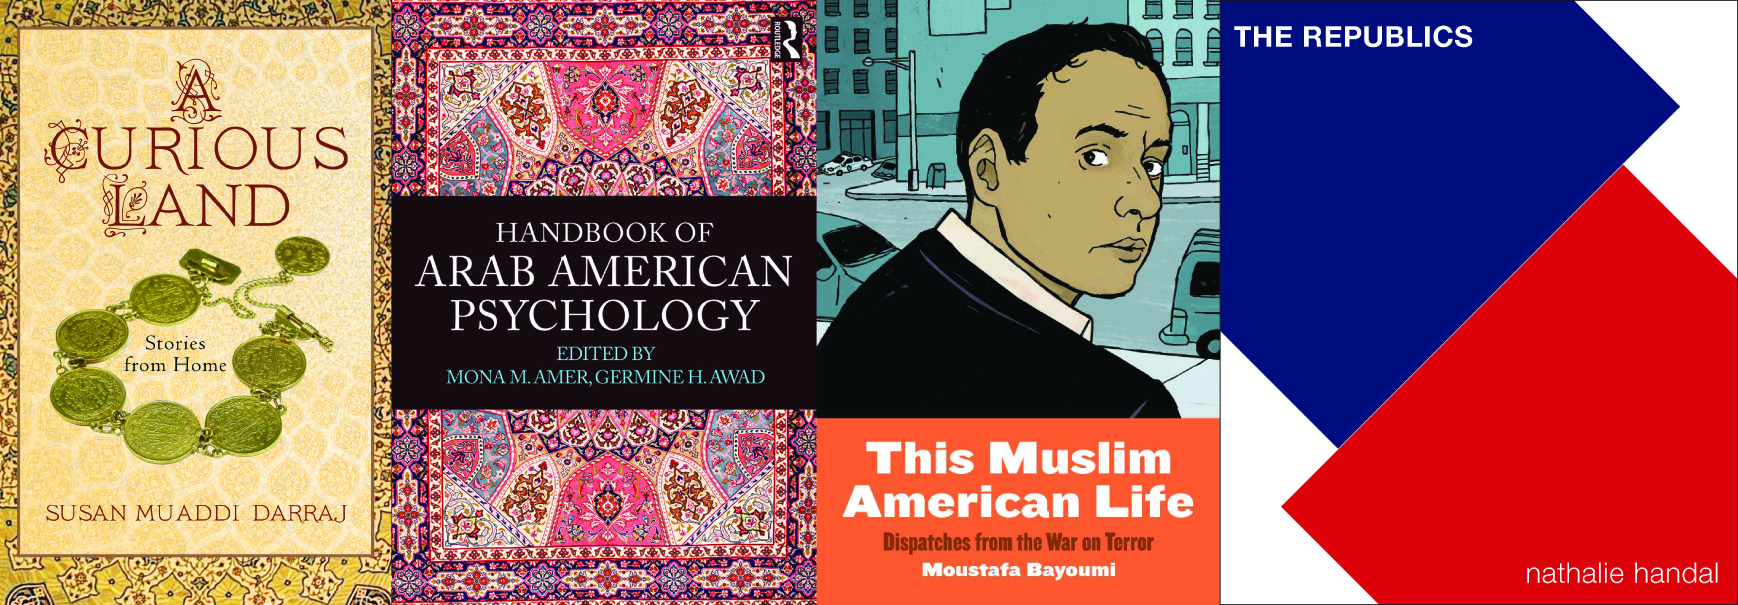 'A Curious Land,' 'The Republics' Among 2016 Winners of Arab American Book Awards